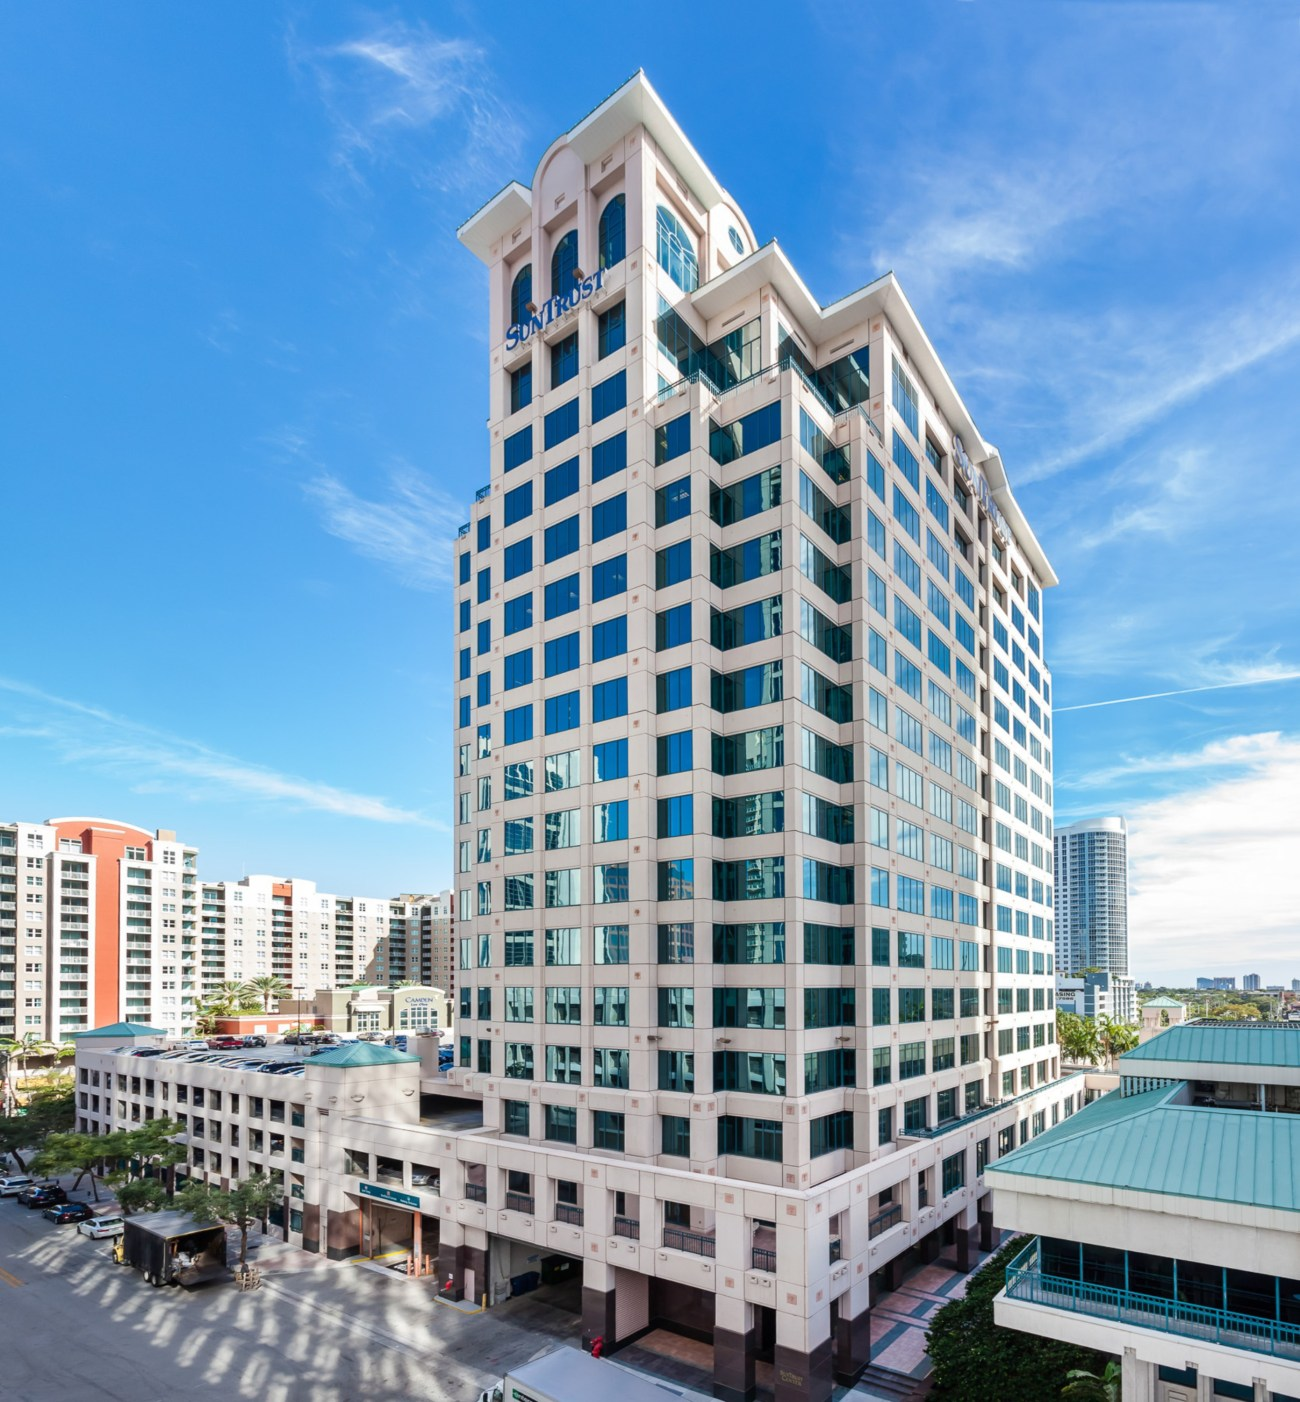 Leasing Picks Up at Steelbridge's Las Olas Square as Renovations Begin